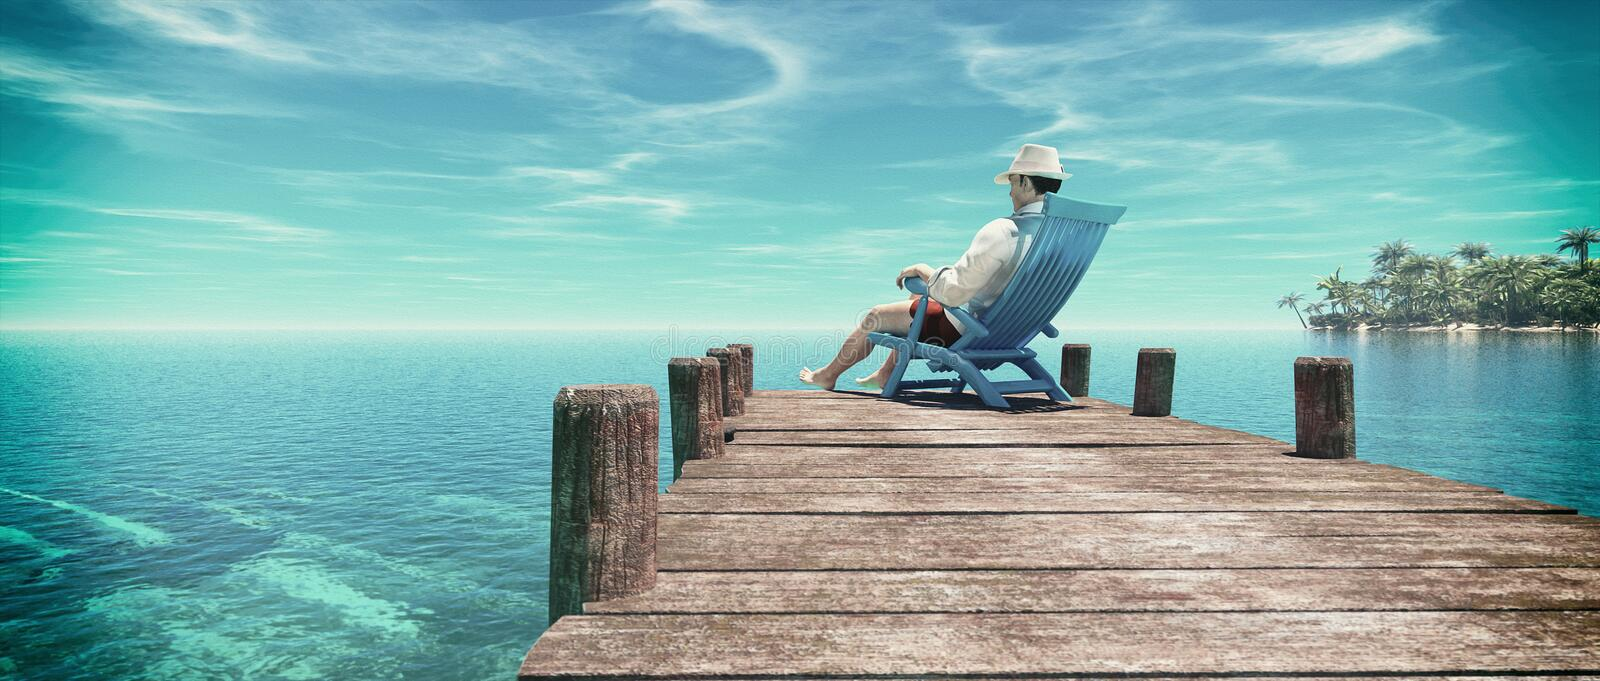 Man sitting in a chair royalty free stock image